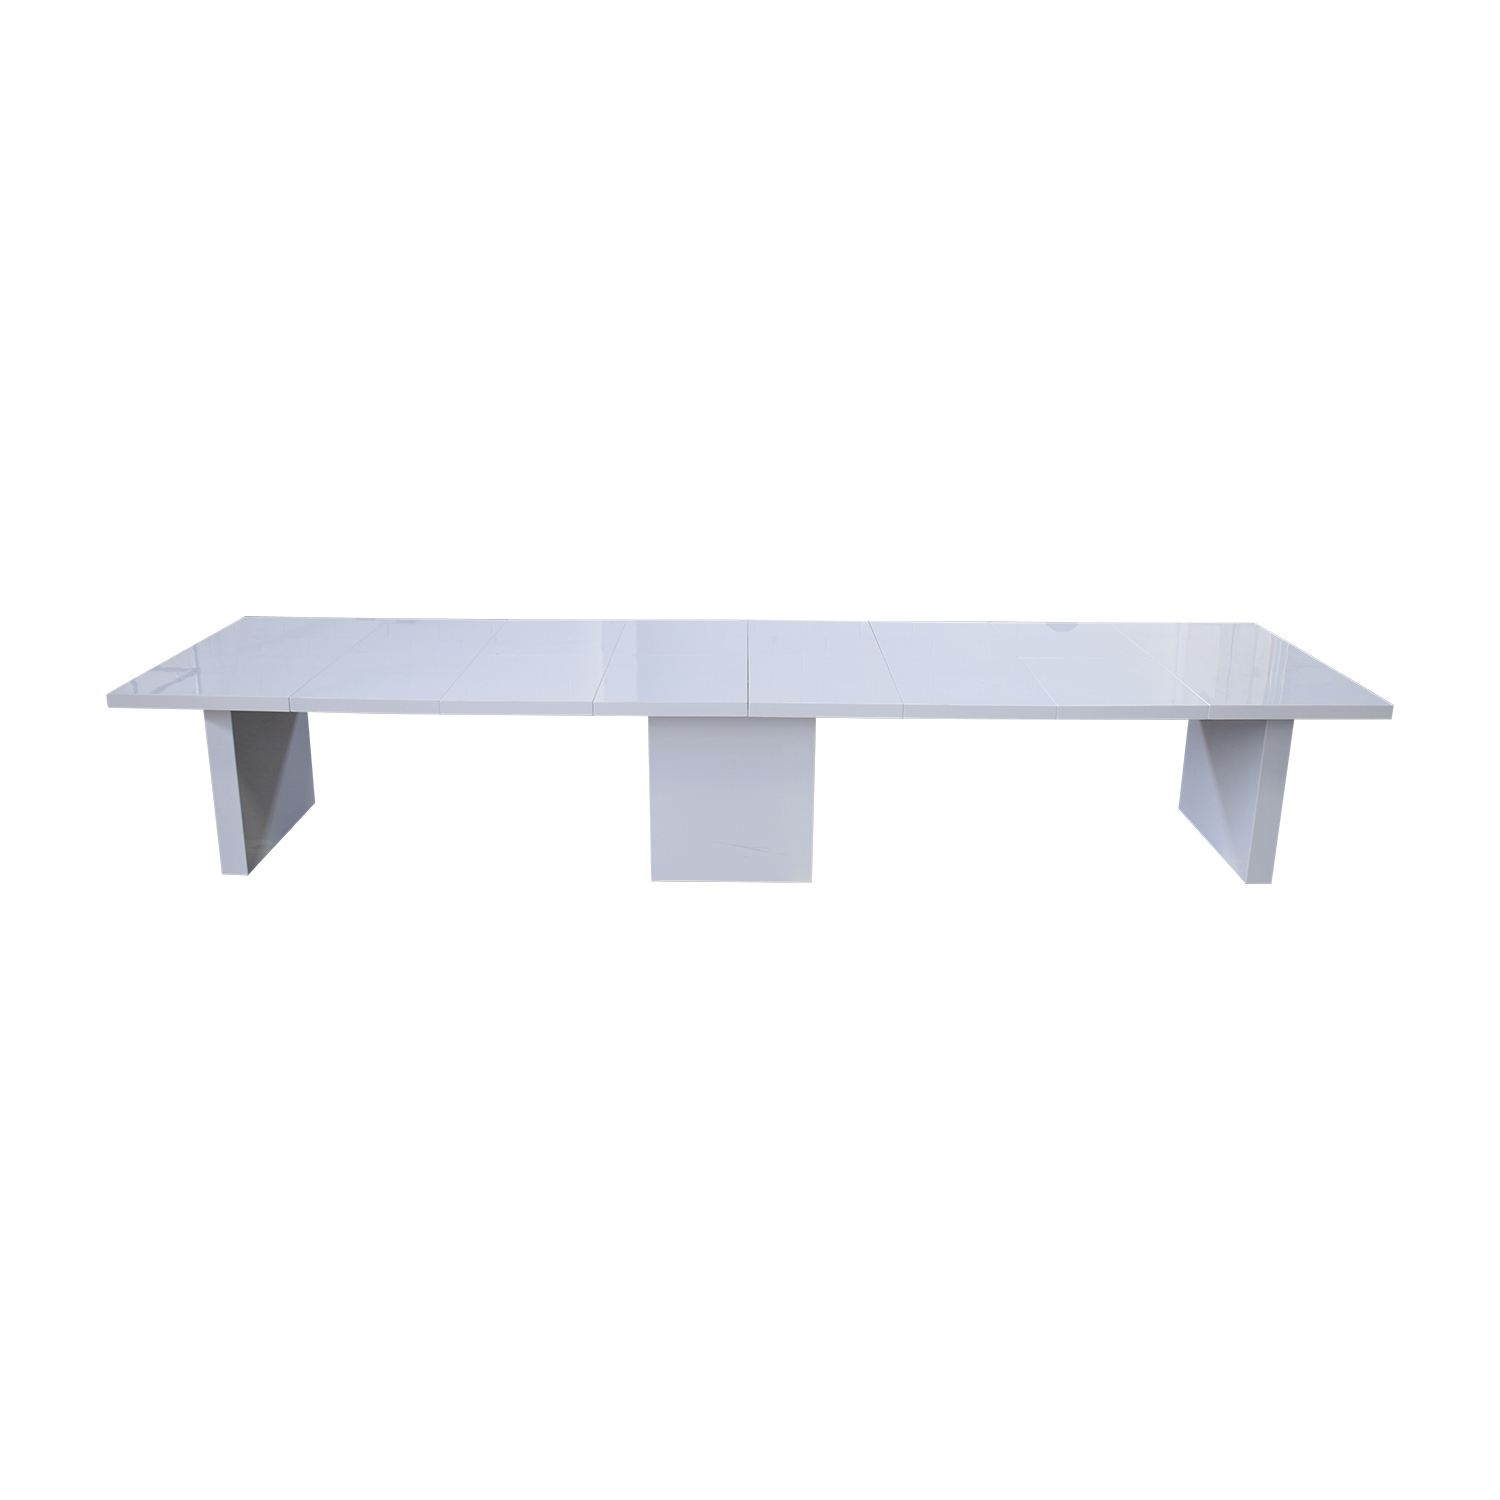 Orren Ellis Orren Ellis Stotfold White Extendable Table second hand